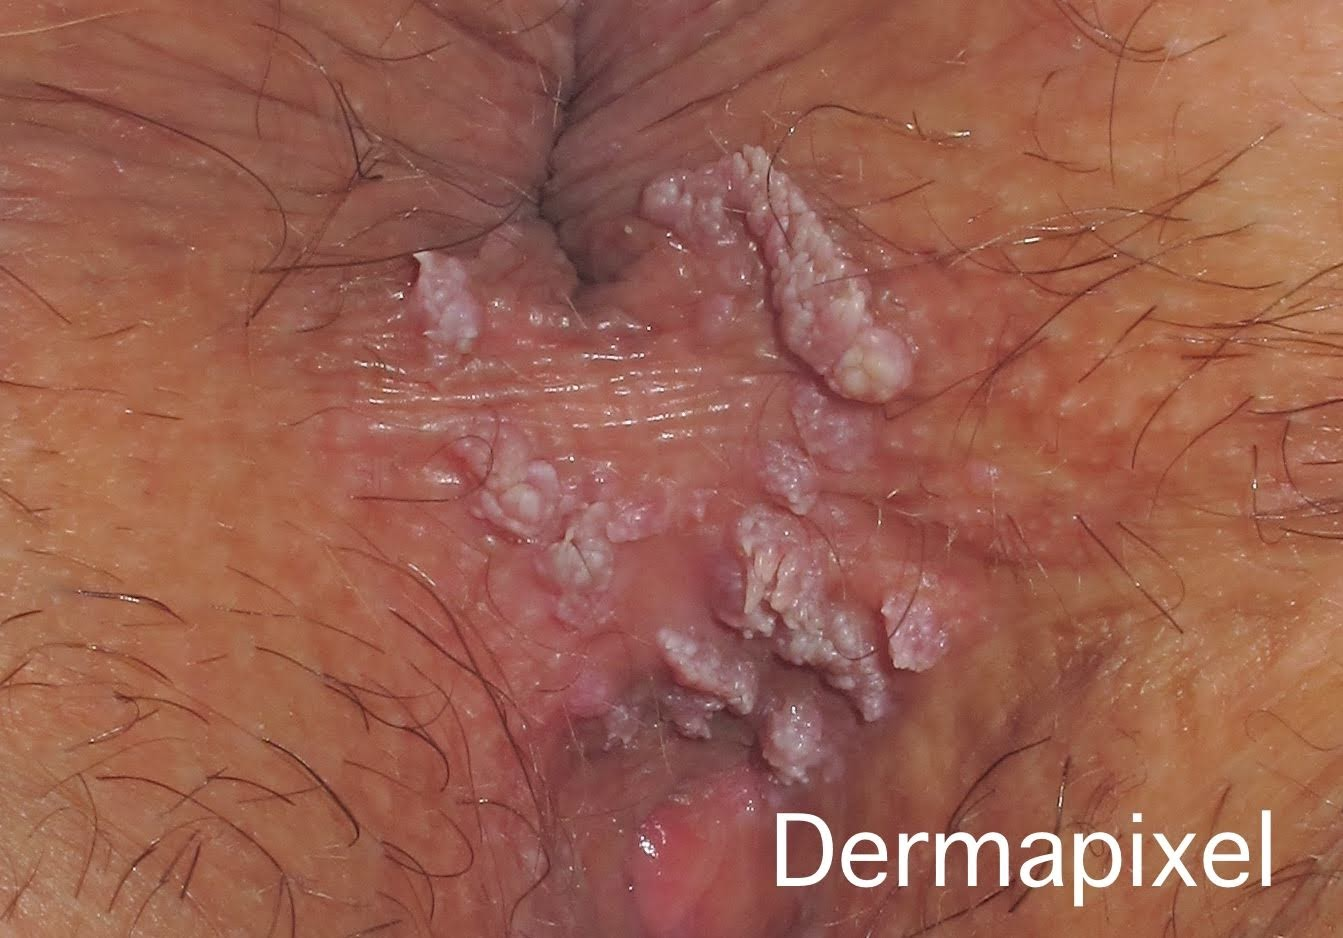 hpv virus for woman ovarian cancer research